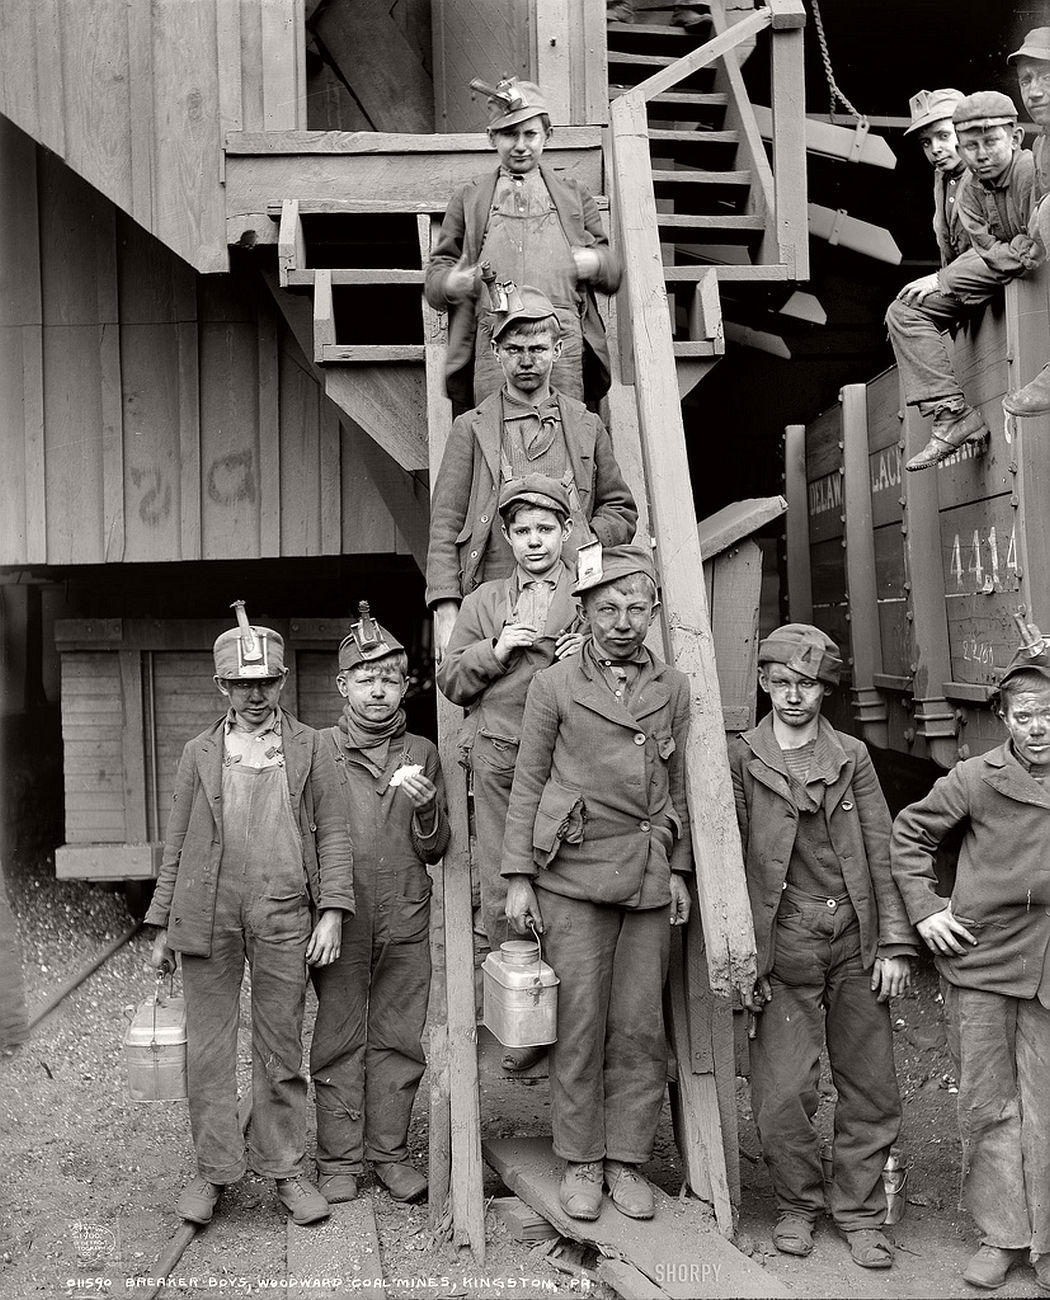 Coal breakers in break-time, Pennsylvania, 1911